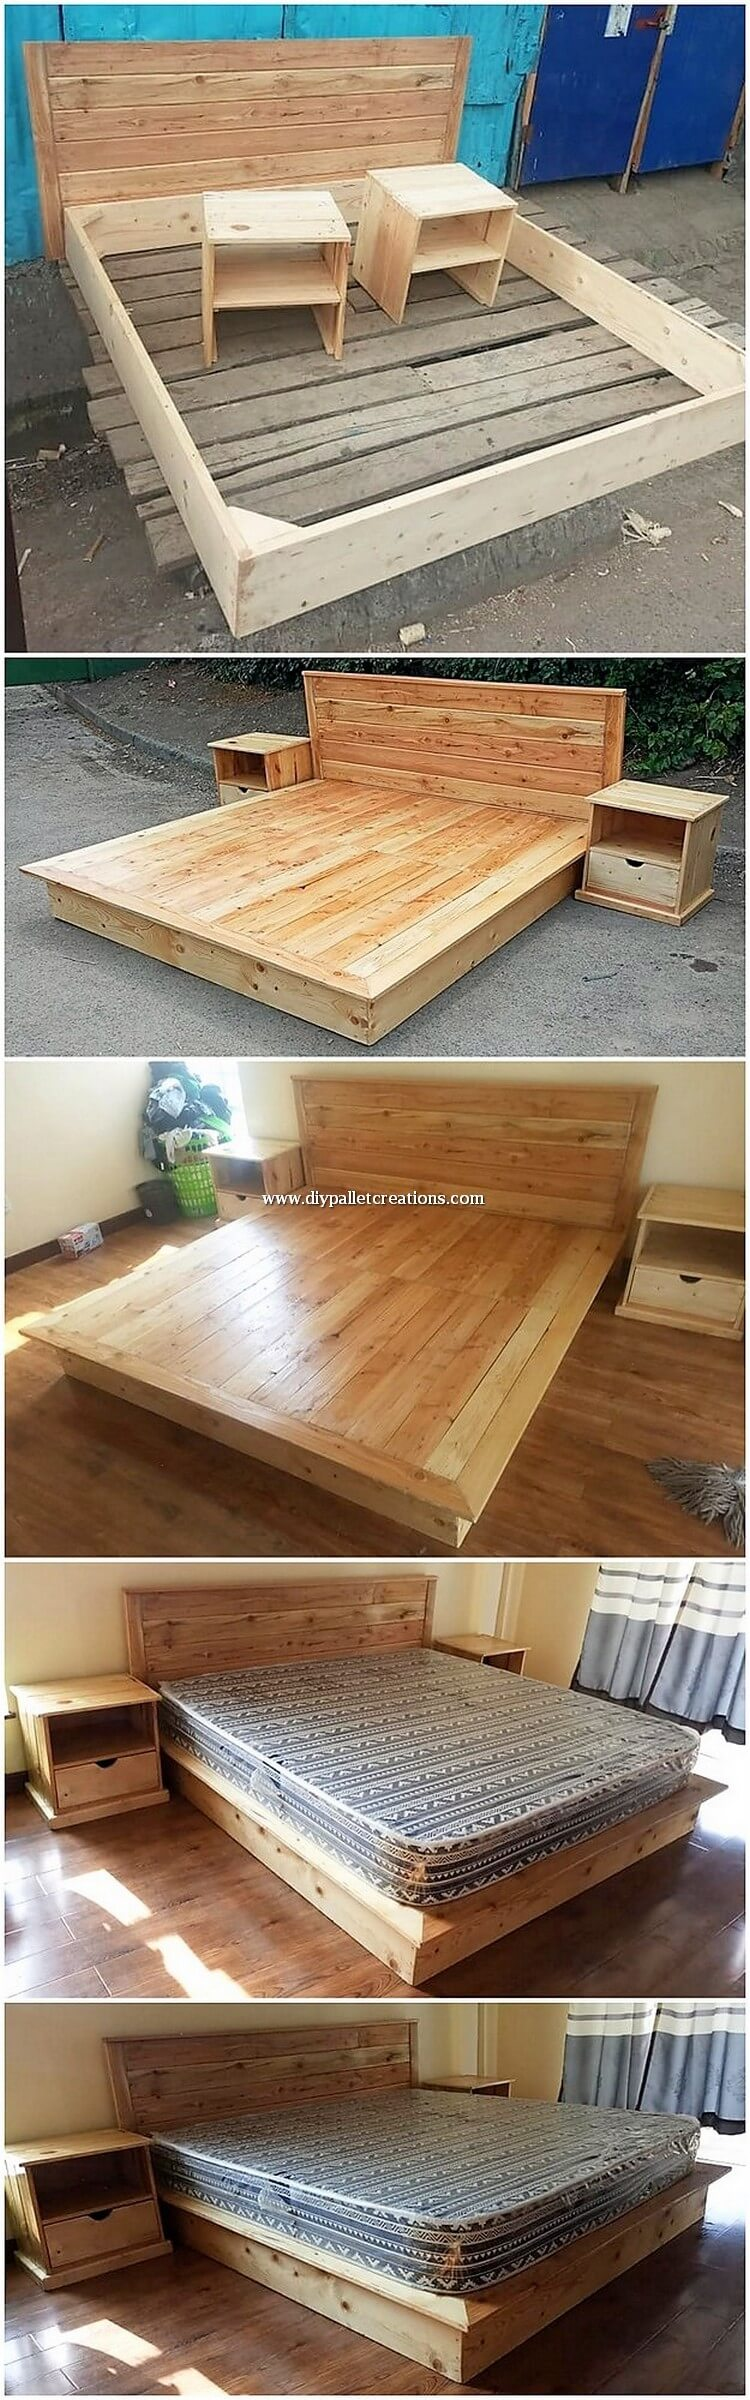 DIY Pallet Bed and Side Tables